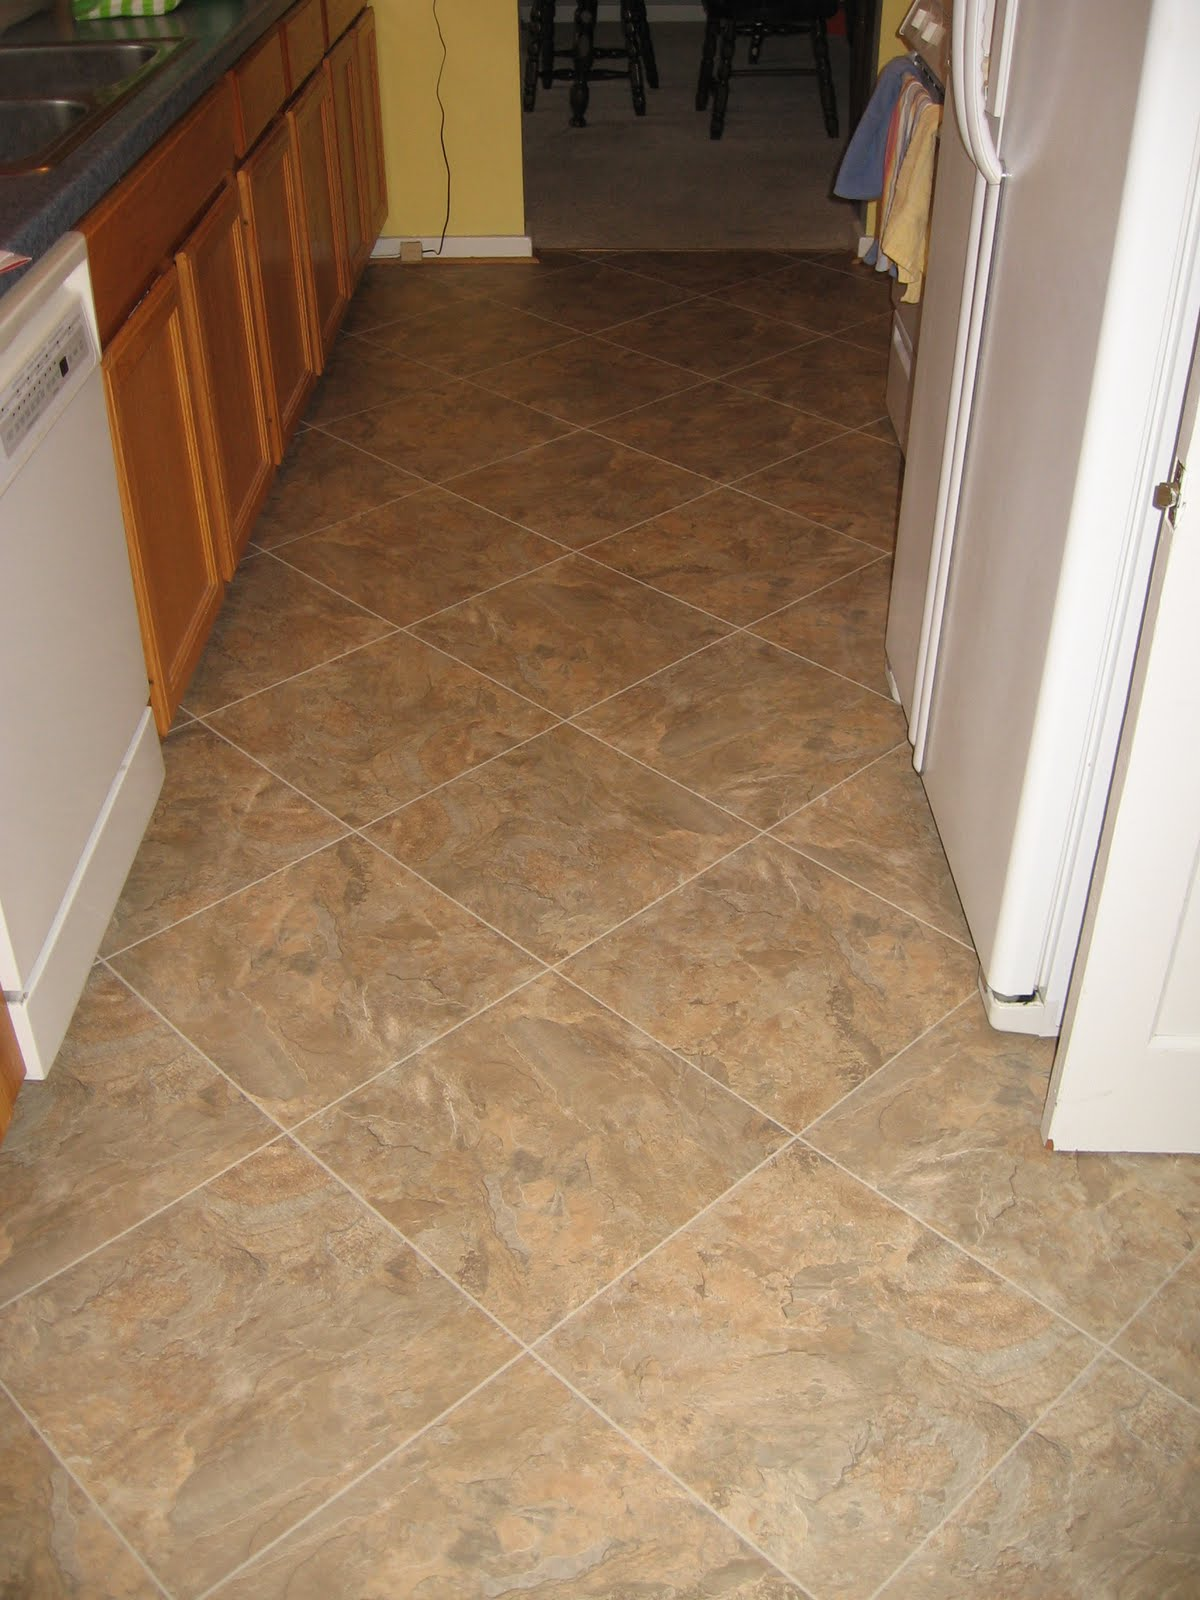 best floor tile ideas kitchen floor tiles ideas polished porcelain OQRVTSN